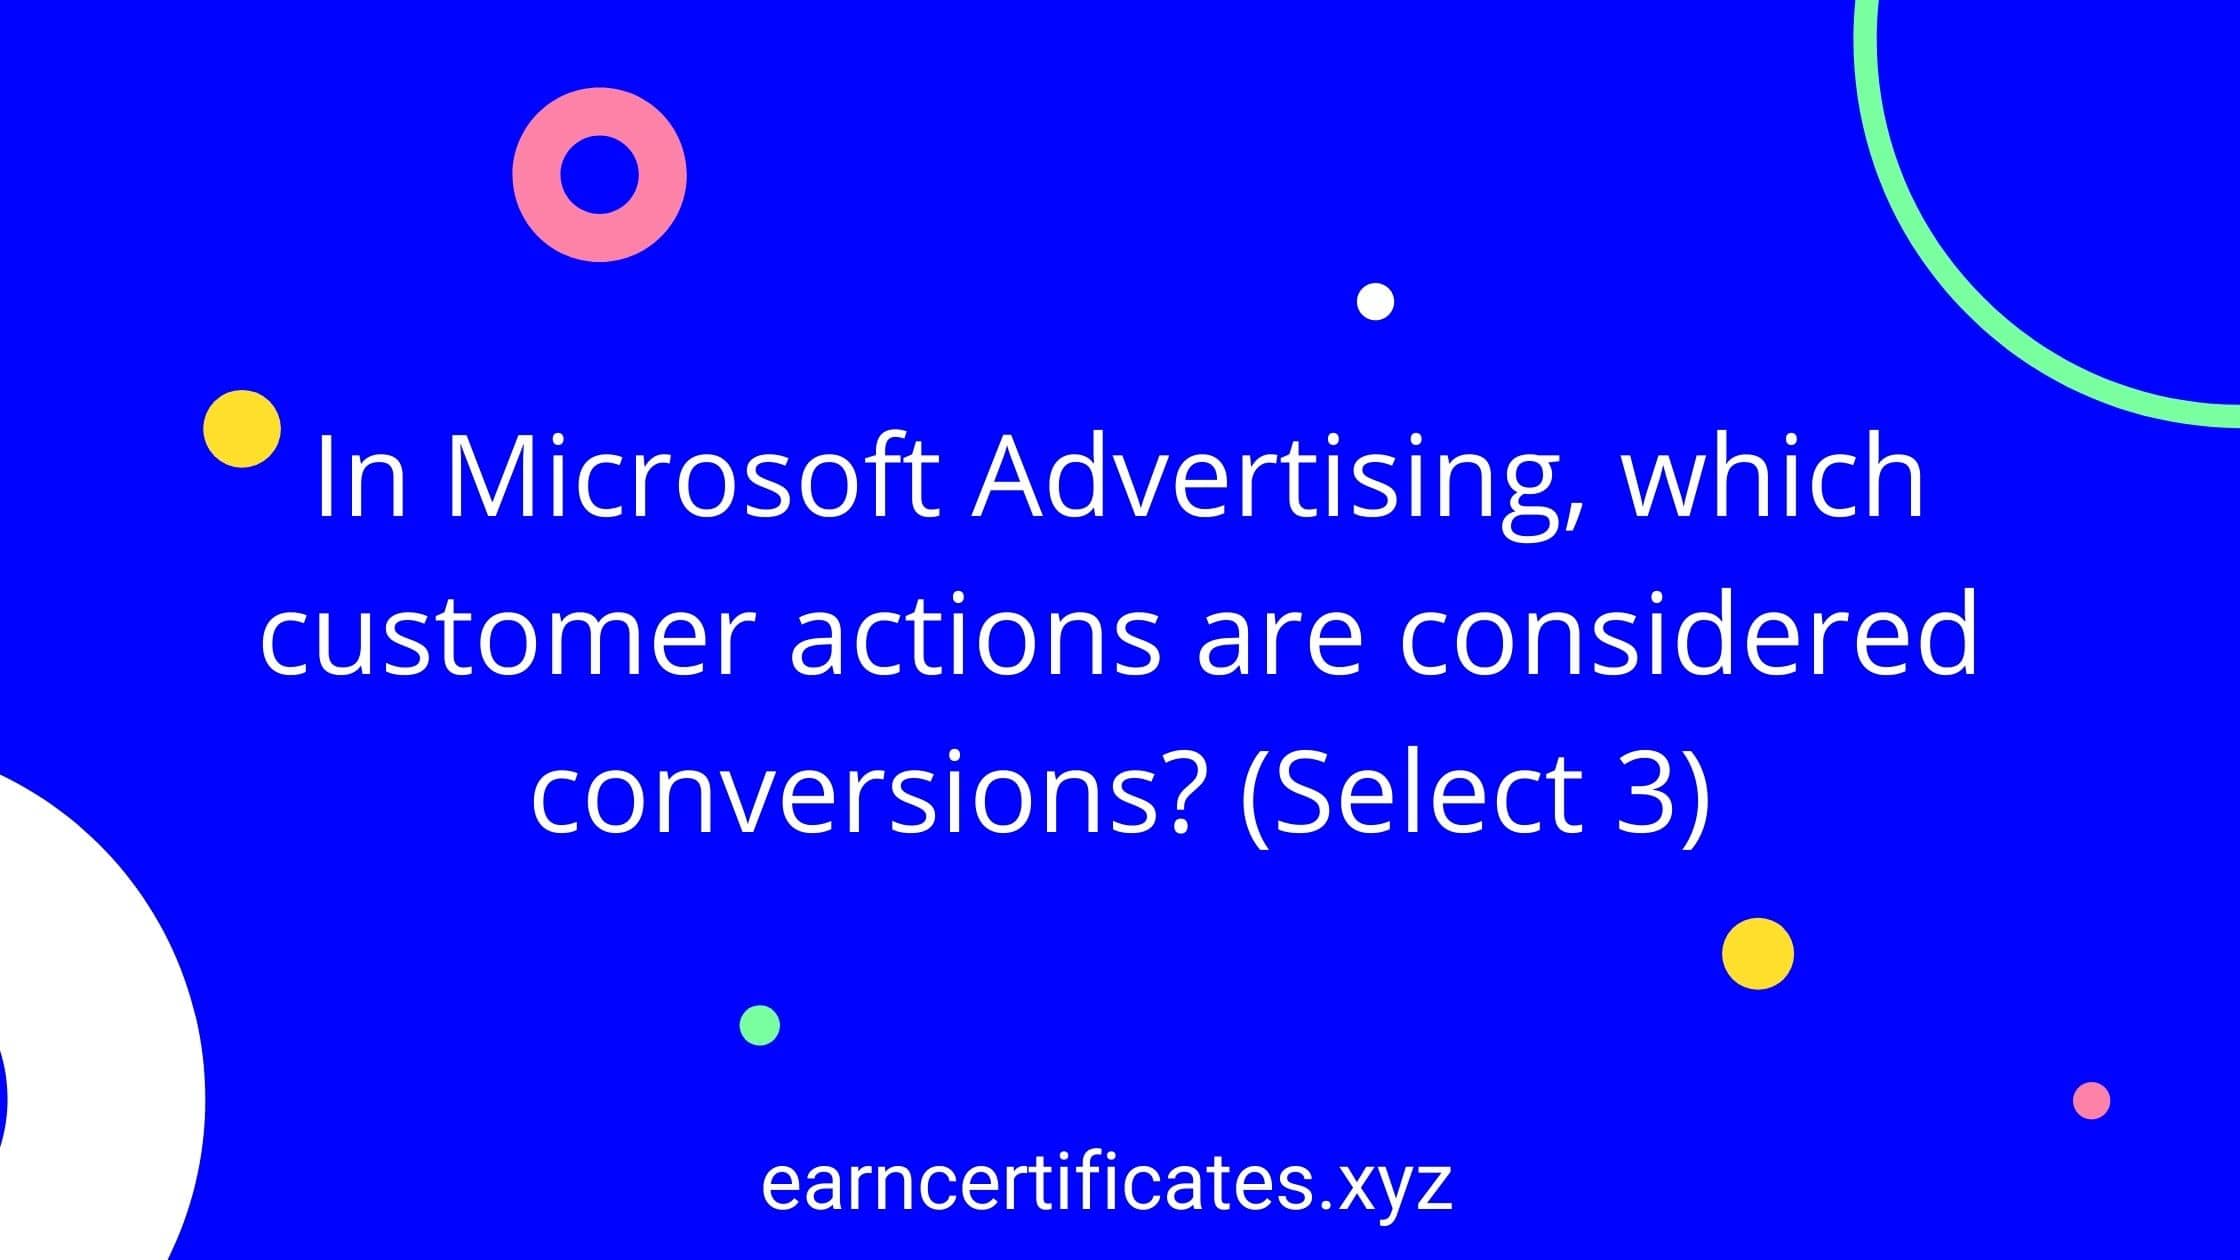 In Microsoft Advertising, which customer actions are considered conversions? (Select 3)